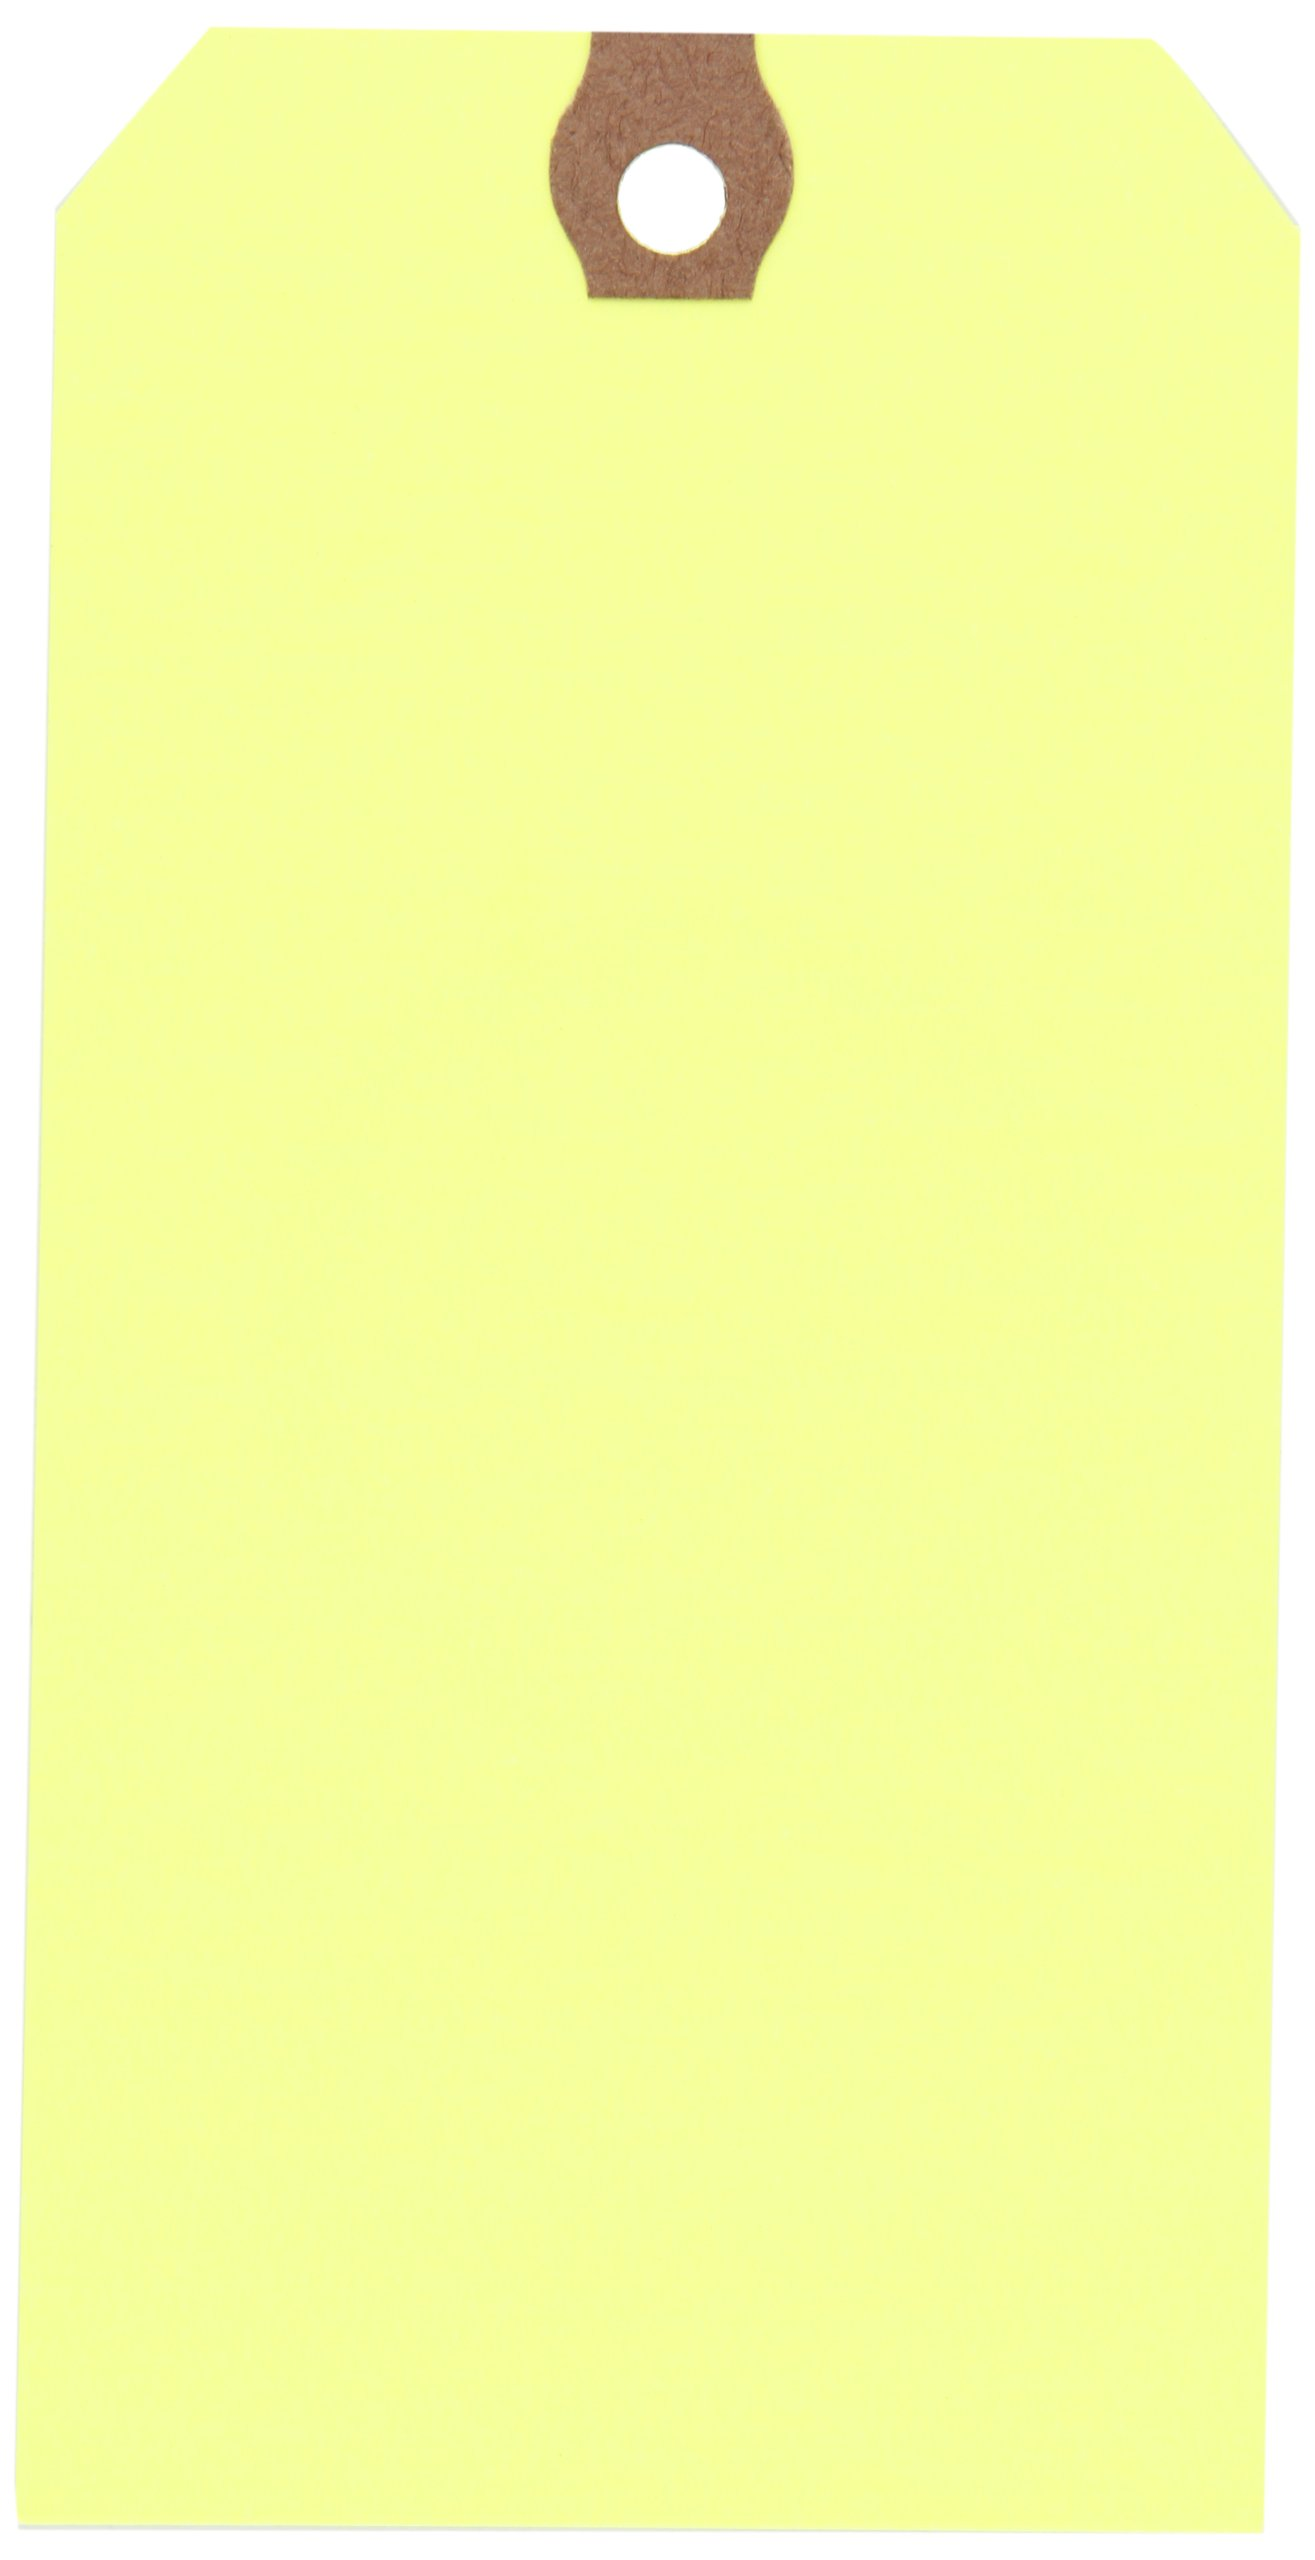 Aviditi 13 Point Cardstock Shipping Tag, 5-3/4'' L x 2-7/8'' W, Fluorescent Yellow, Case of 1000 (G12071A)